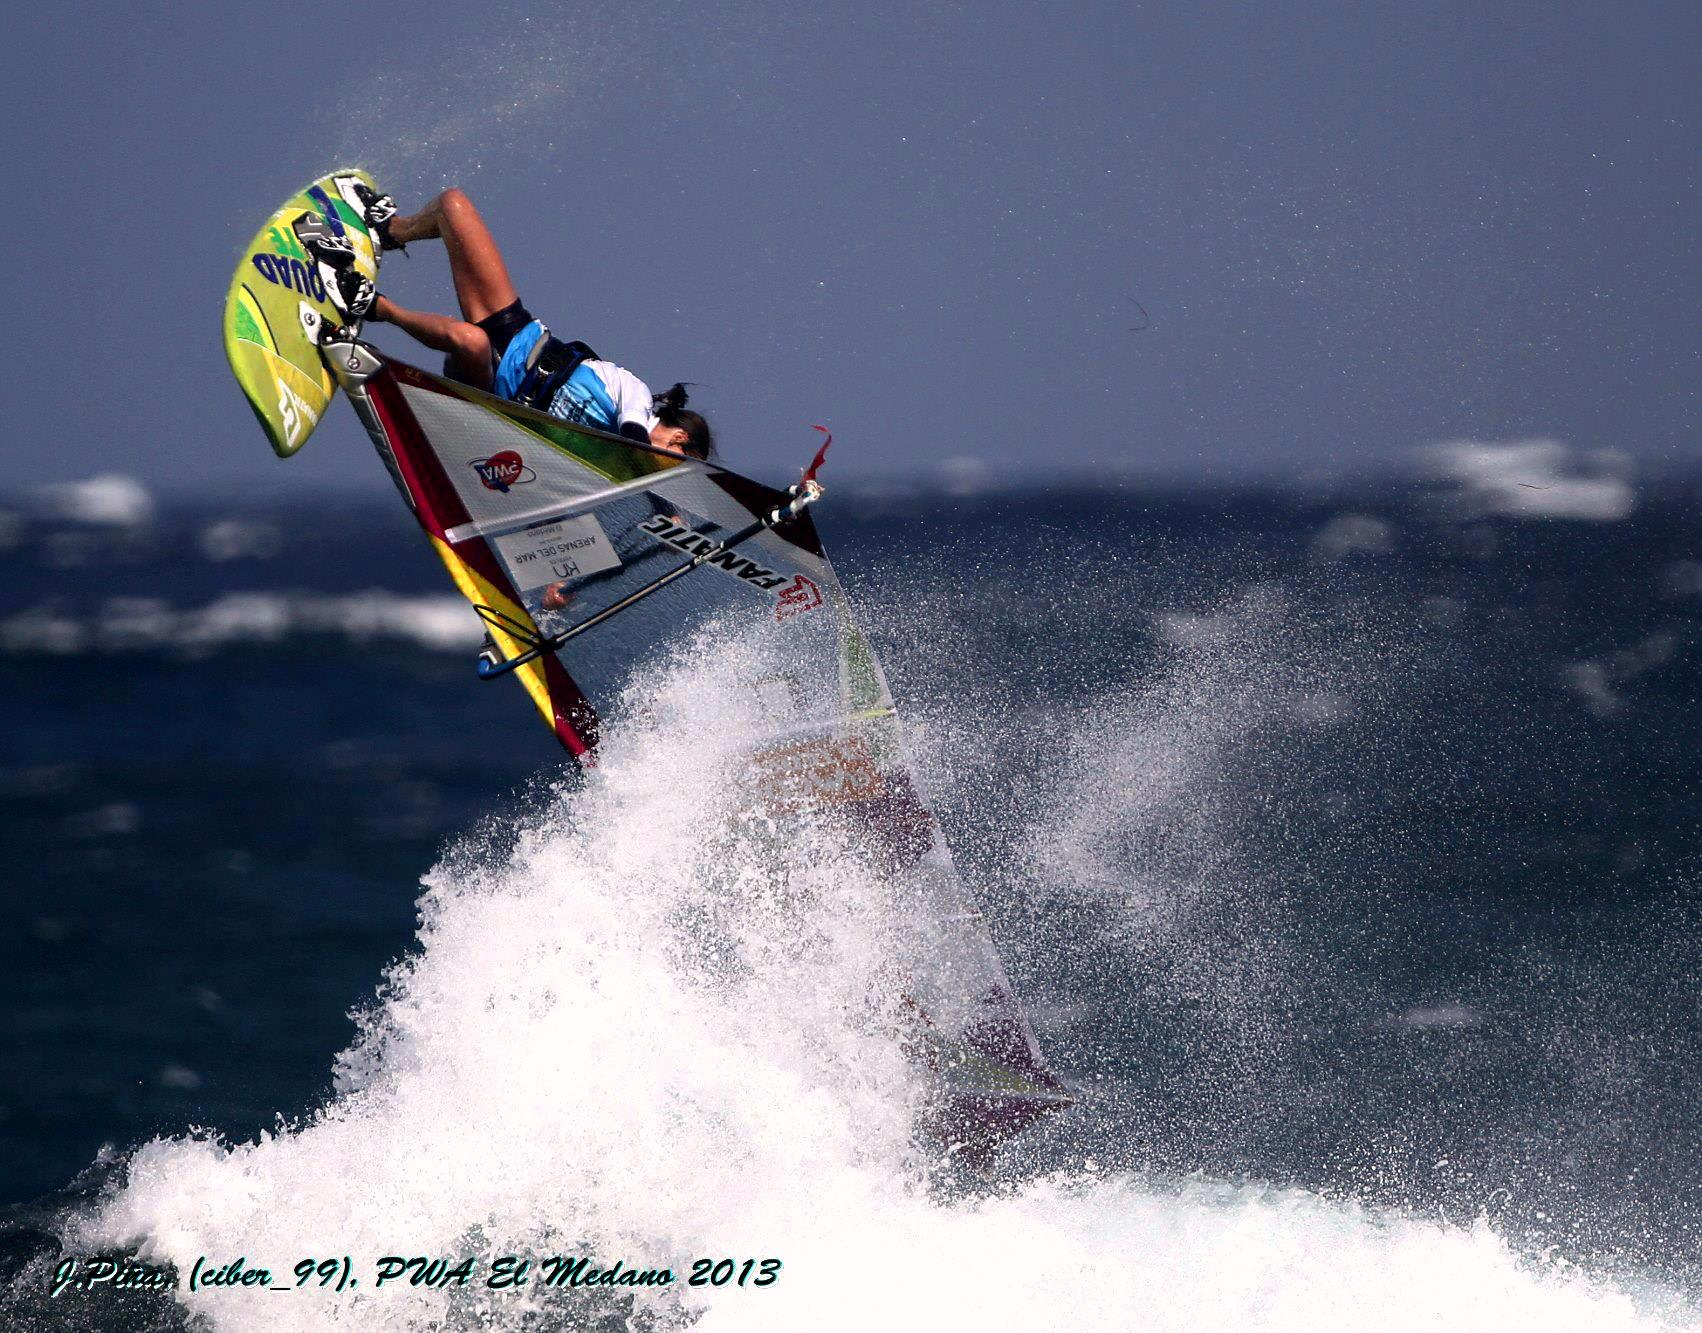 Competition 3 competion Tenerife pushloop